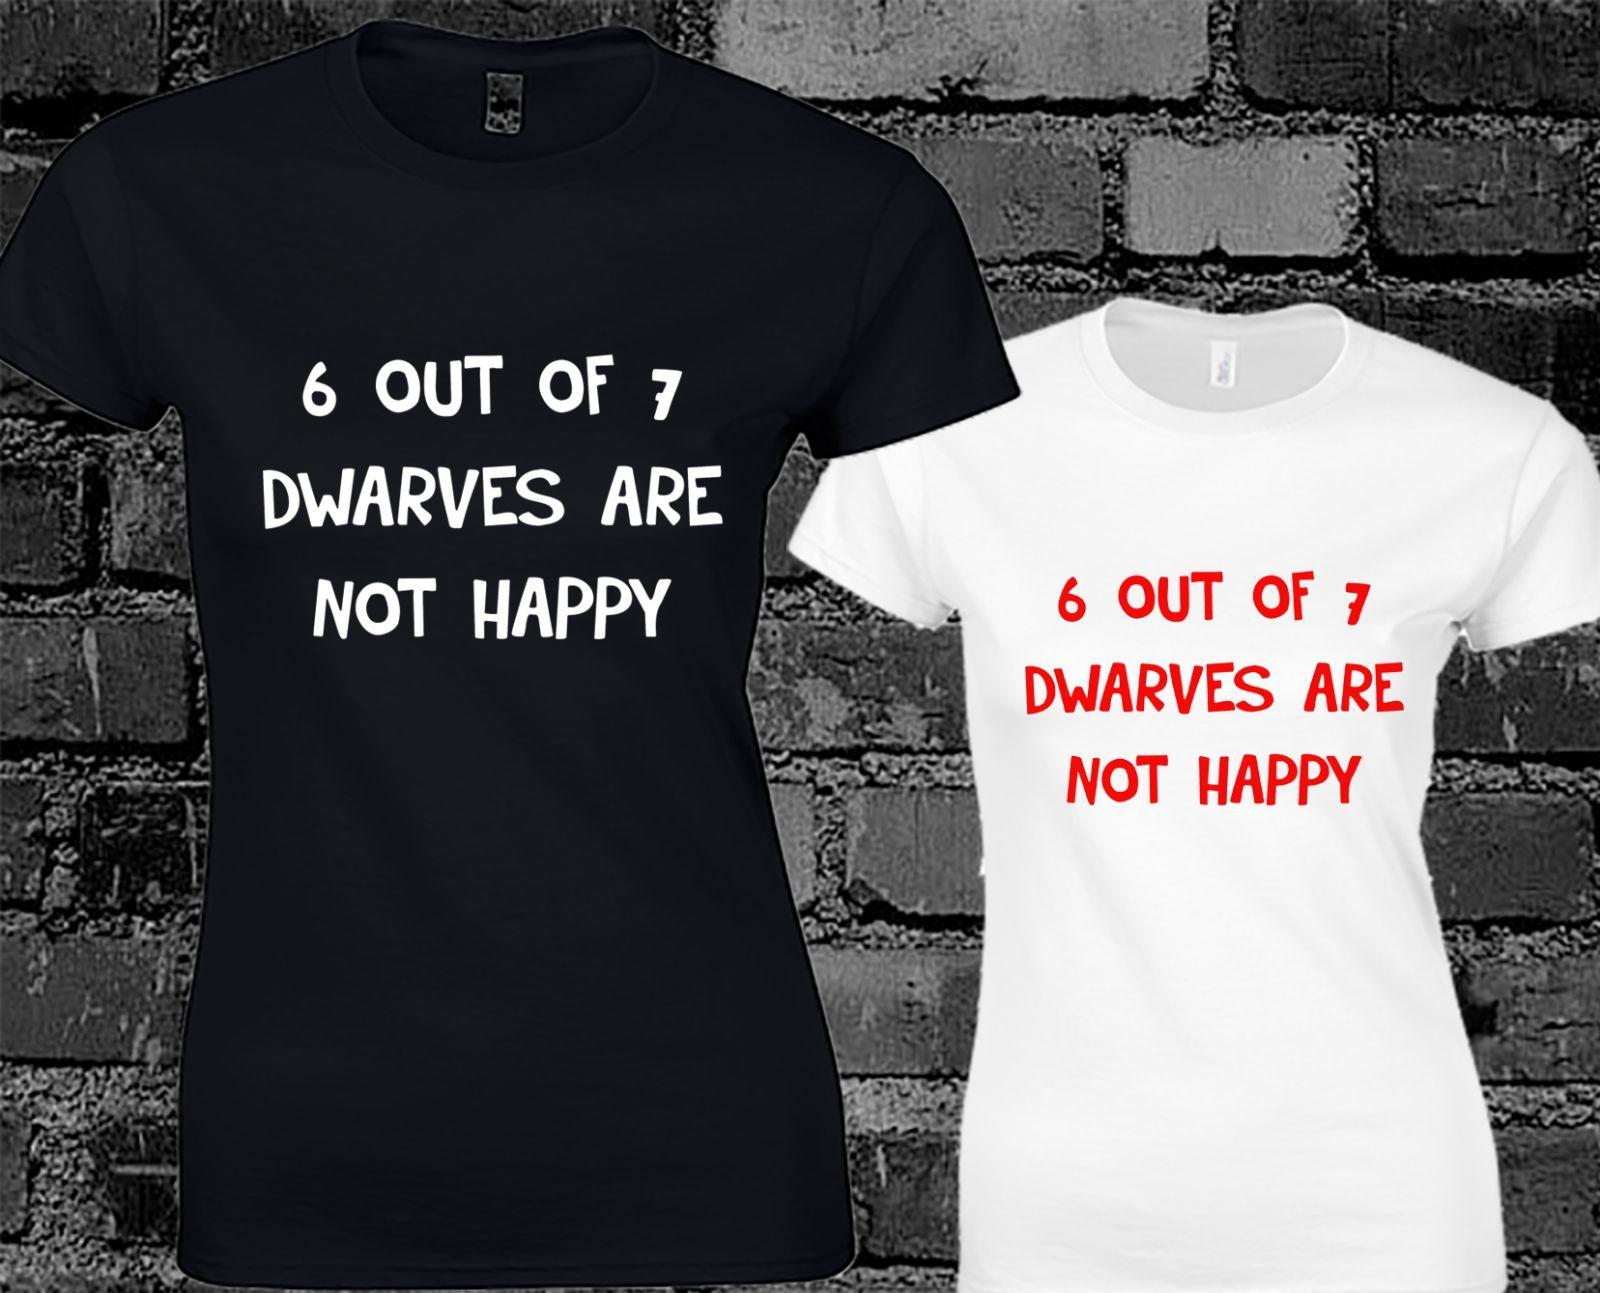 a2c2e52b Shirts & Tops 6 Out Of 7 Dwarves are Not Happy Mens T Shirt Top Funny ...